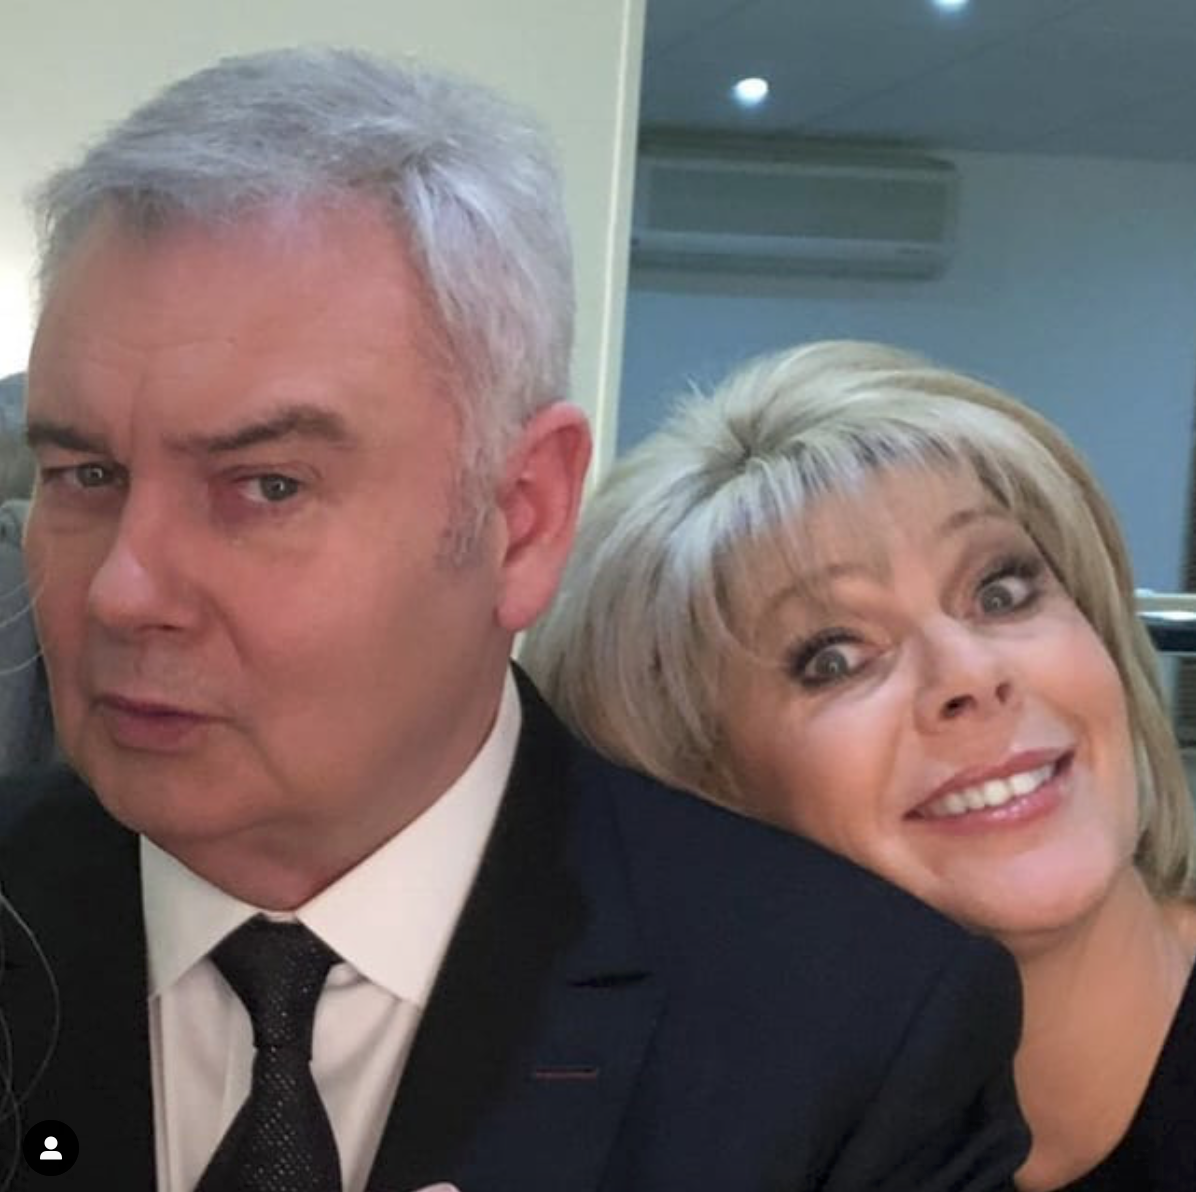 Ruth with her husband Eamonn Instagram